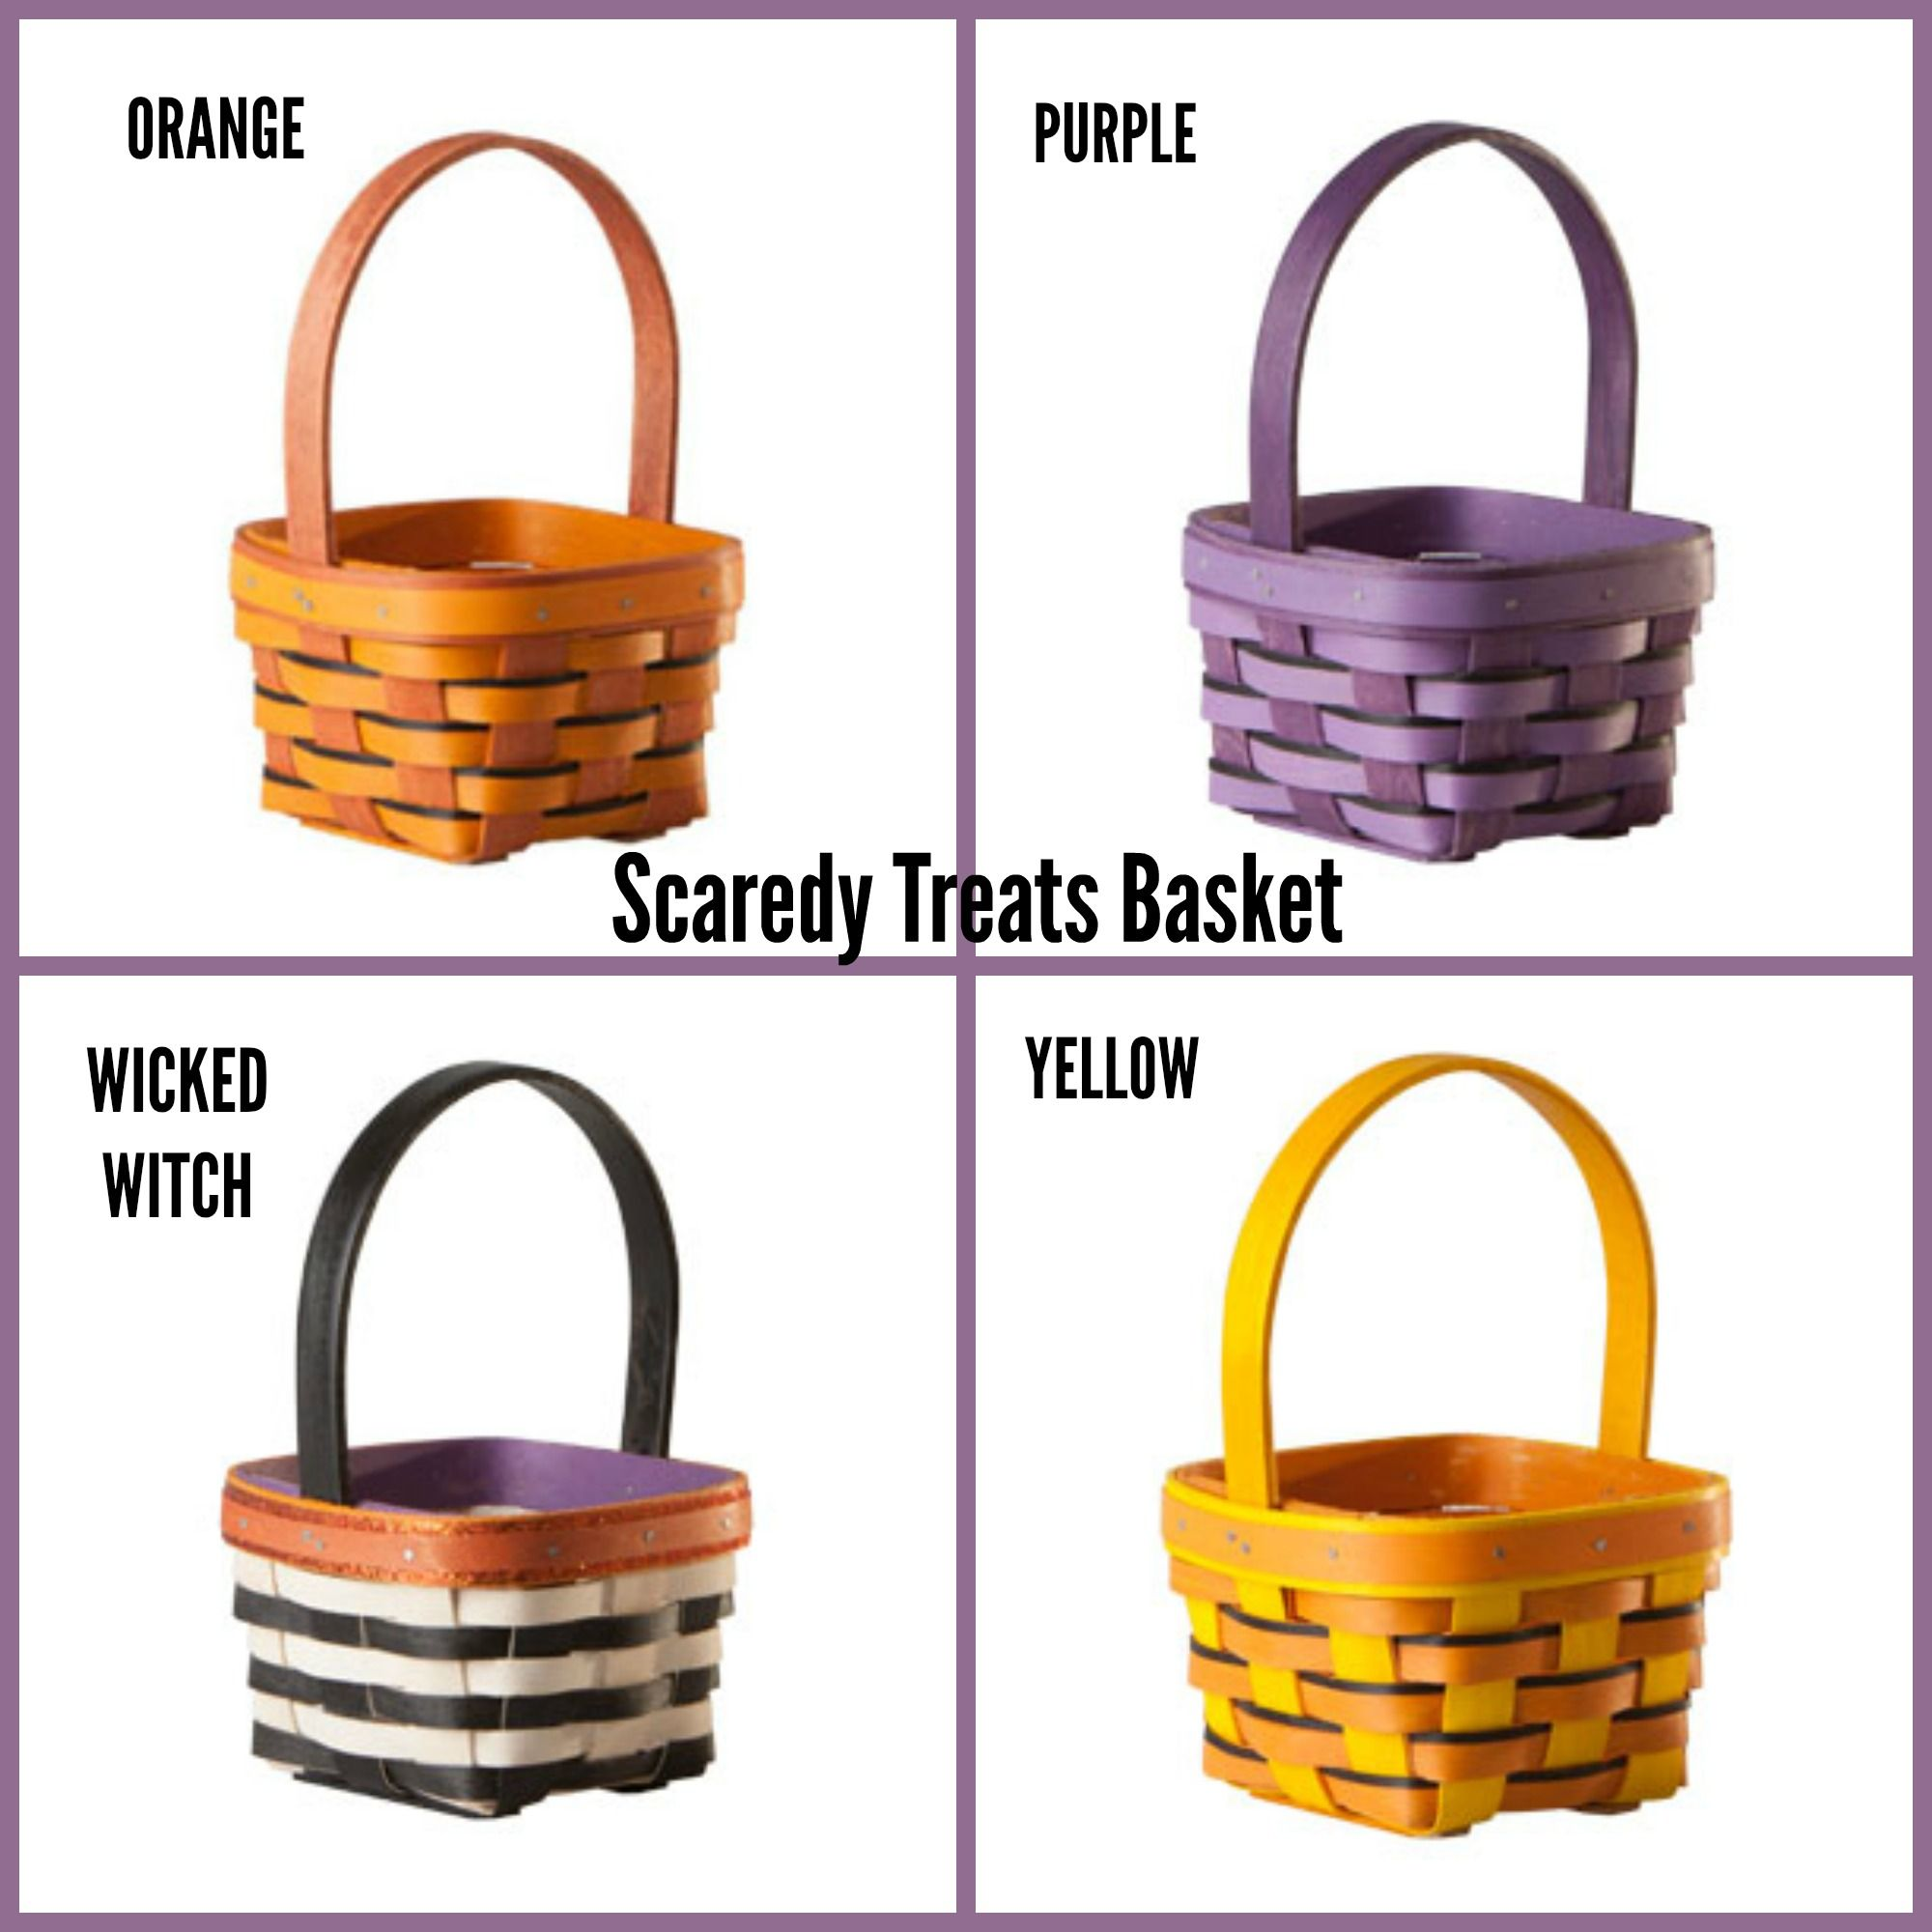 No Trick...just Treats. Early offer on the Scaredy Treats Baskets ...